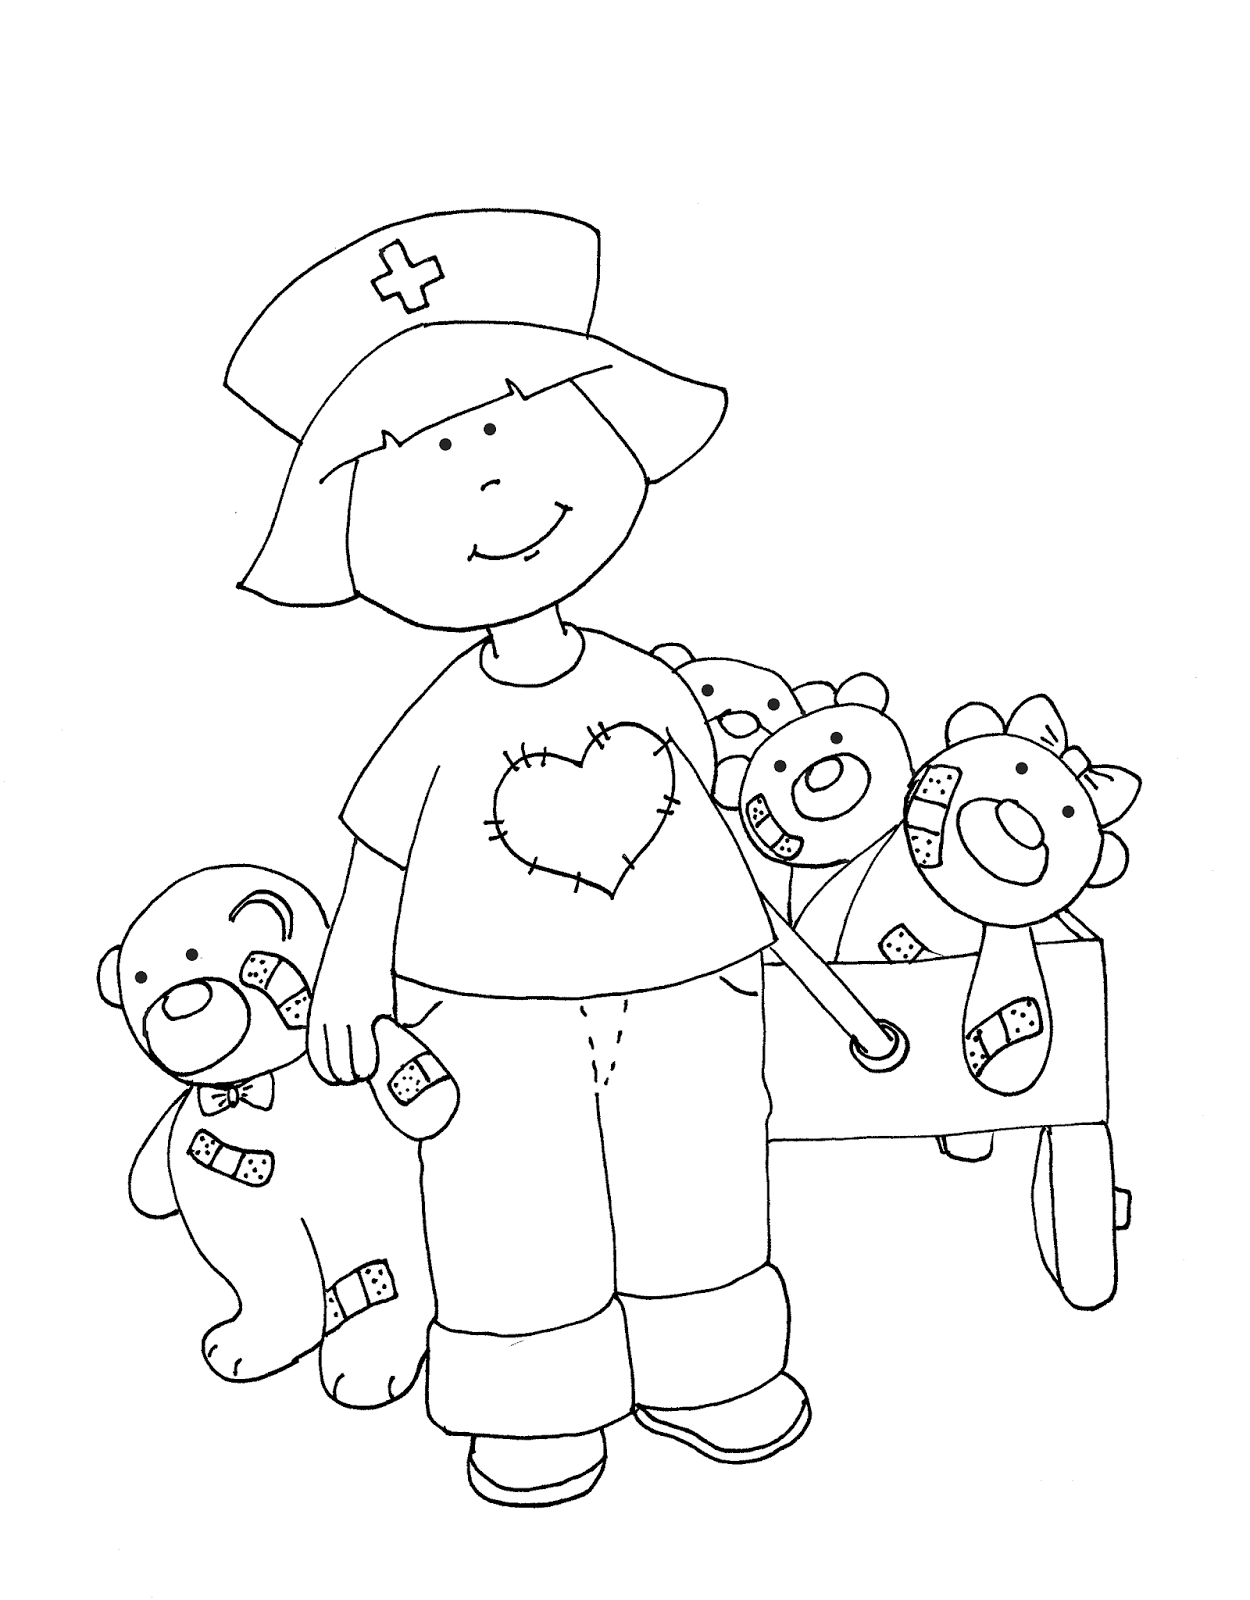 Nurse with Wagon of Bears.png (PNG Image, 1250 × 1600